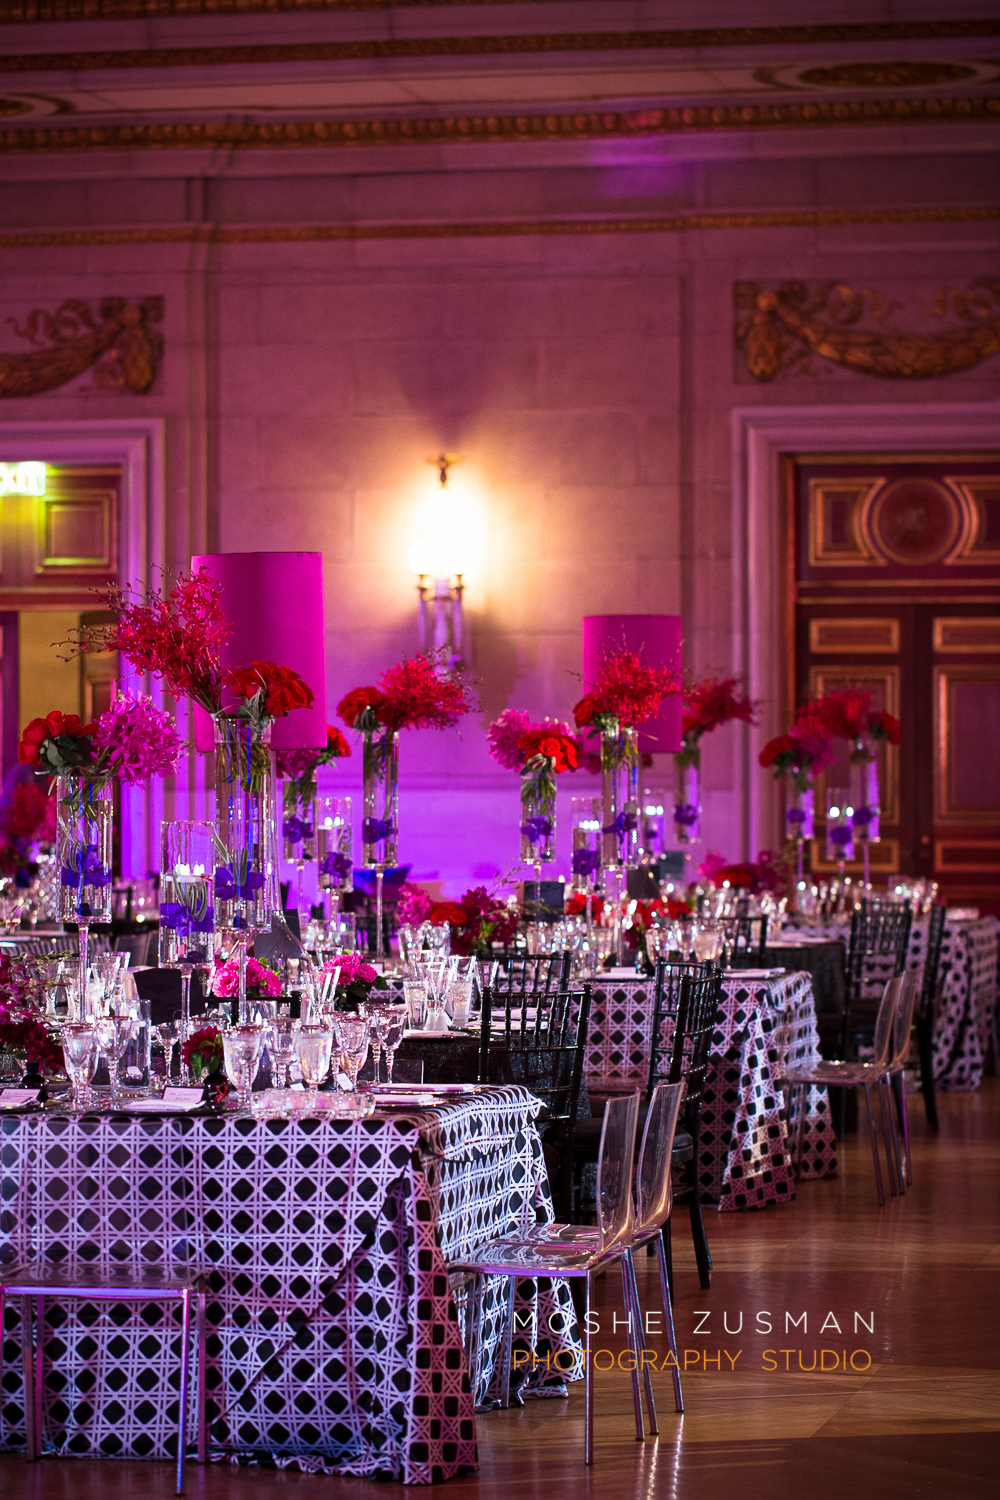 Bar-Mitzvah-photographer-moshe-zusman-RSVP-mellon-auditorium-12.jpg